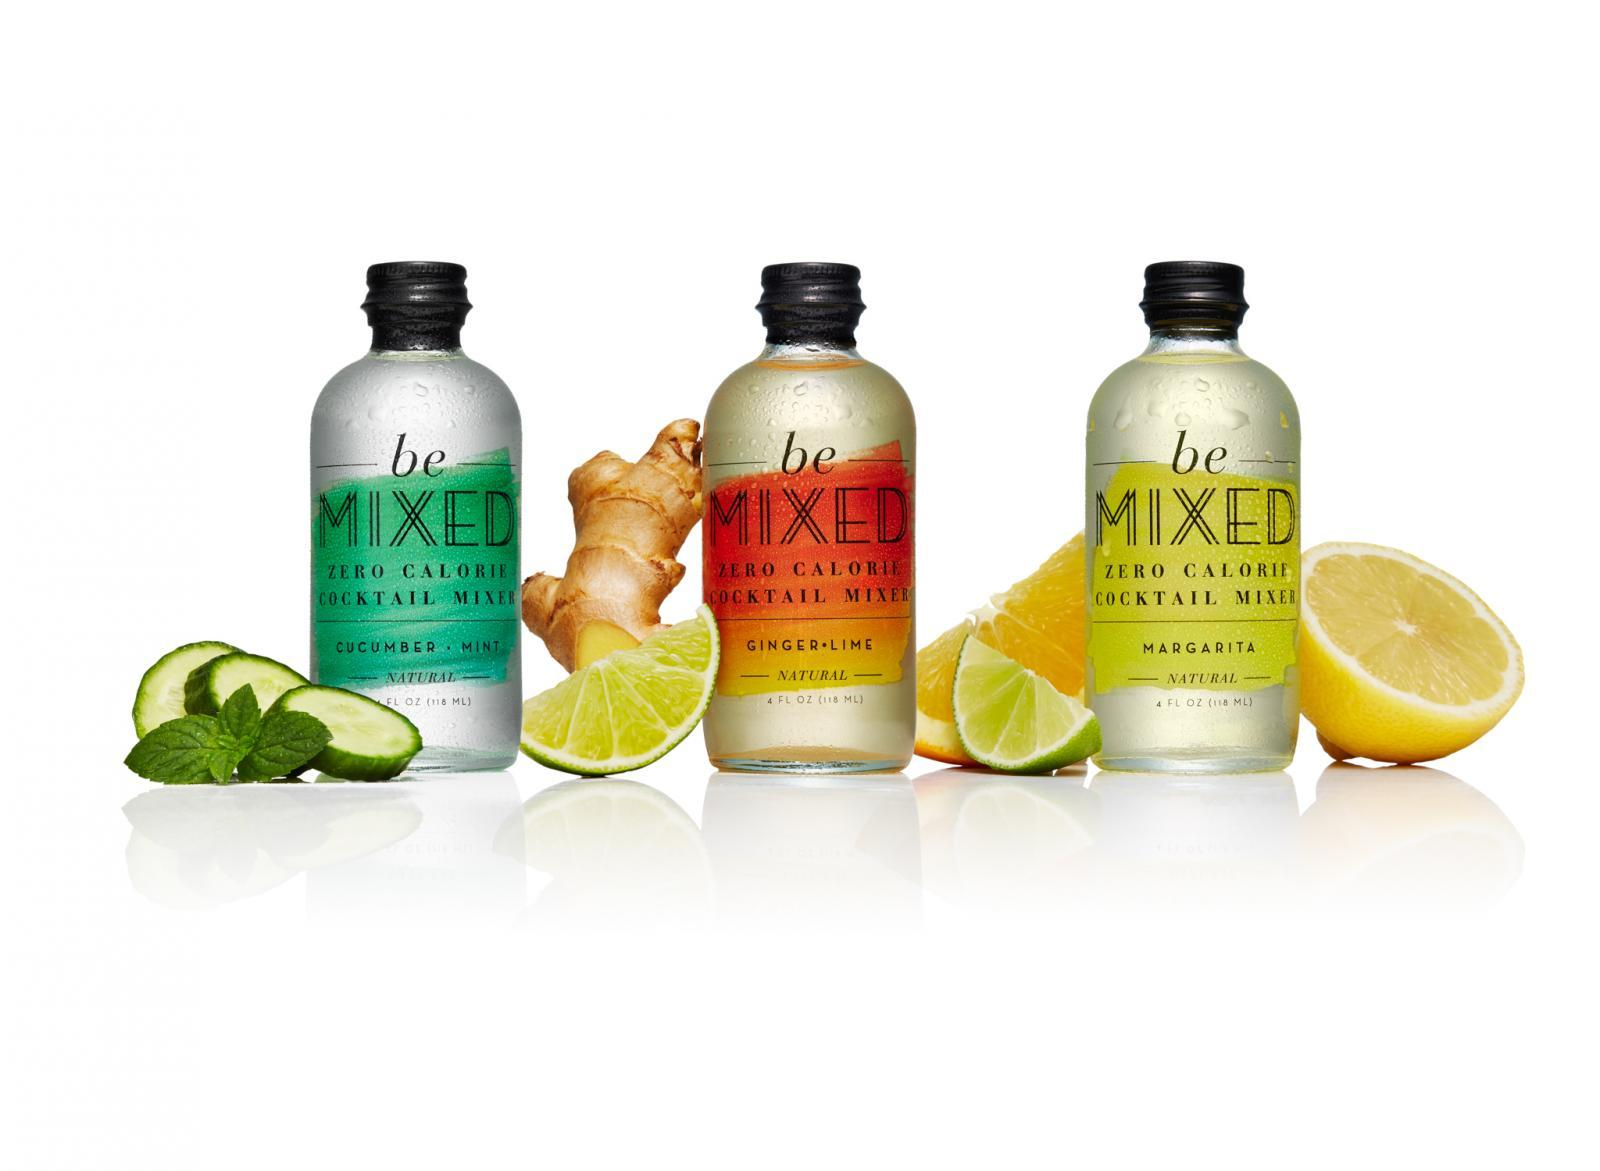 Zero Calorie Cocktail Mixers Variety Pack (12 bottles, 4oz each)